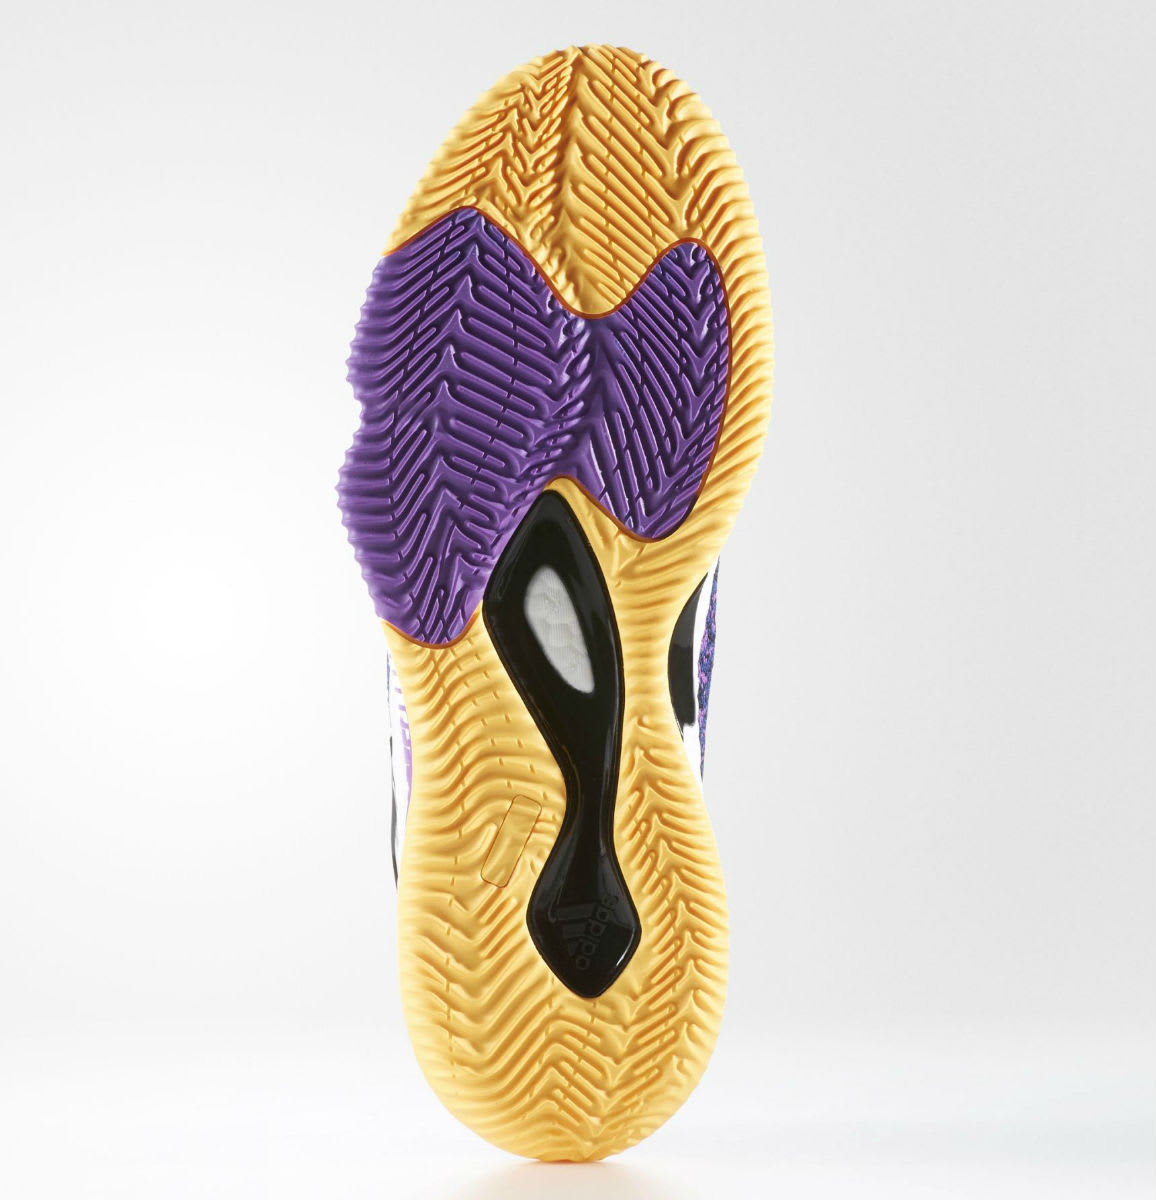 Adidas Crazylight Boost Swaggy P Lakers Sole BB8175